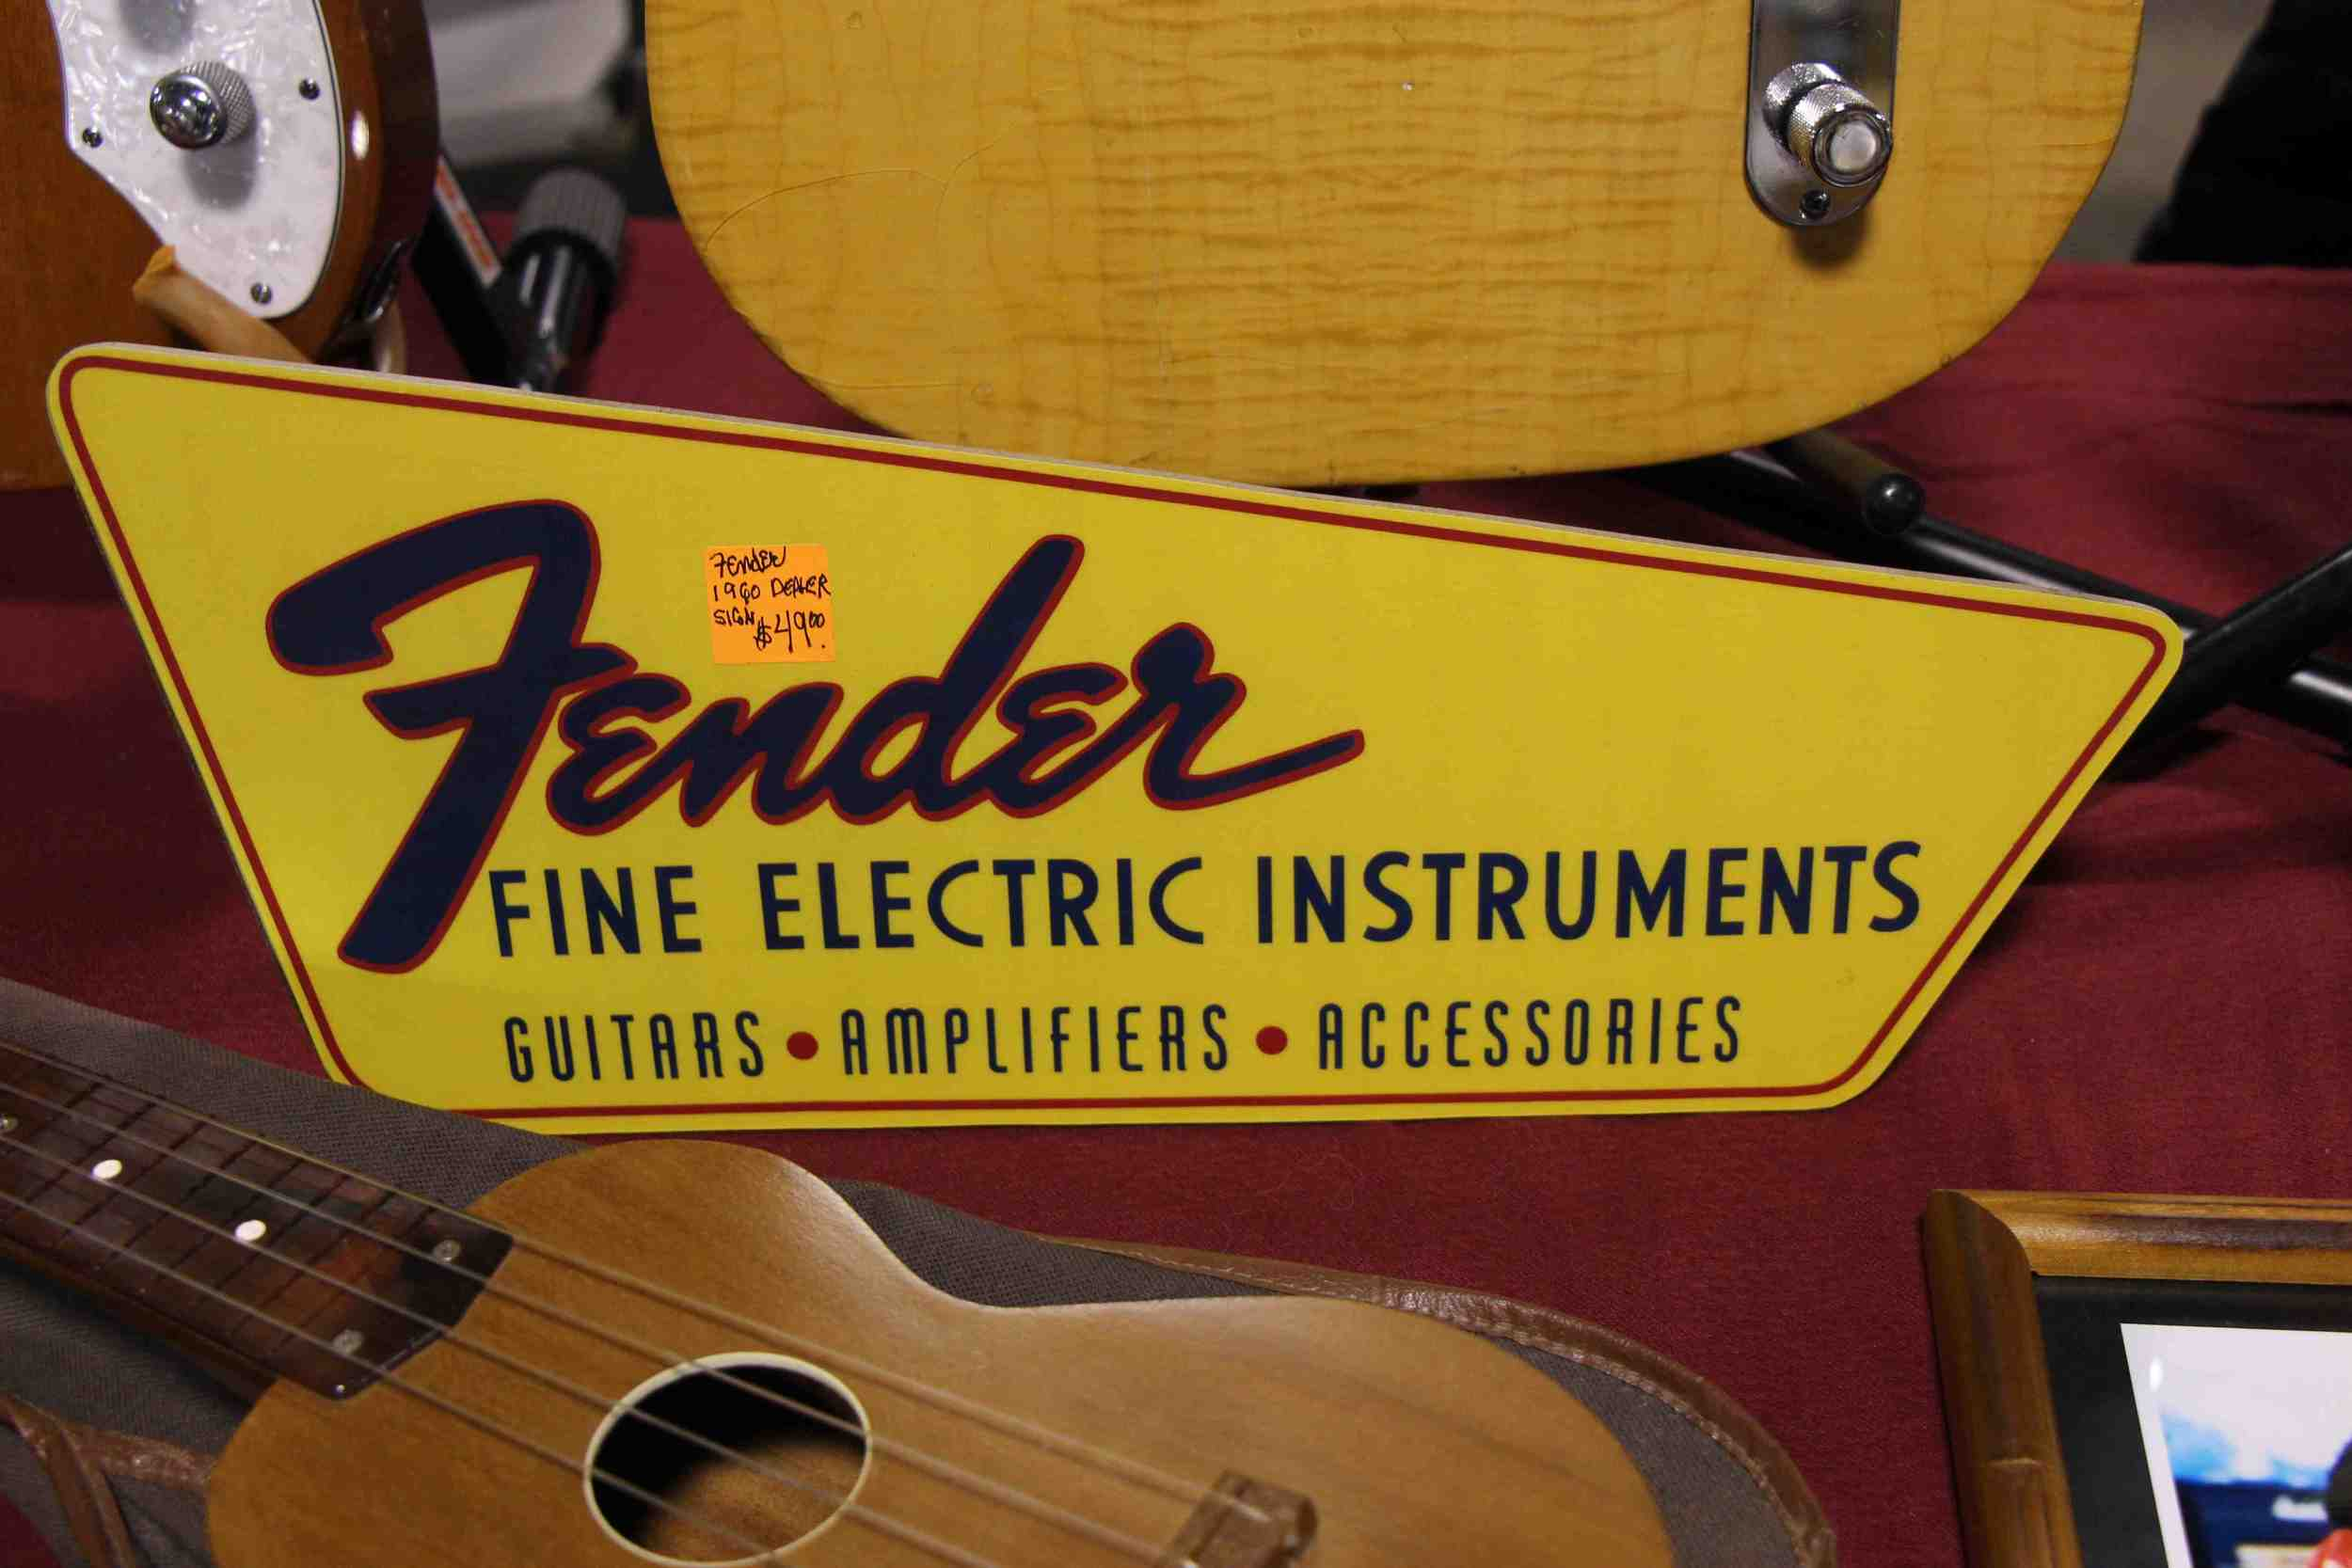 The Fender Musical Instrument Corporation Old Logo